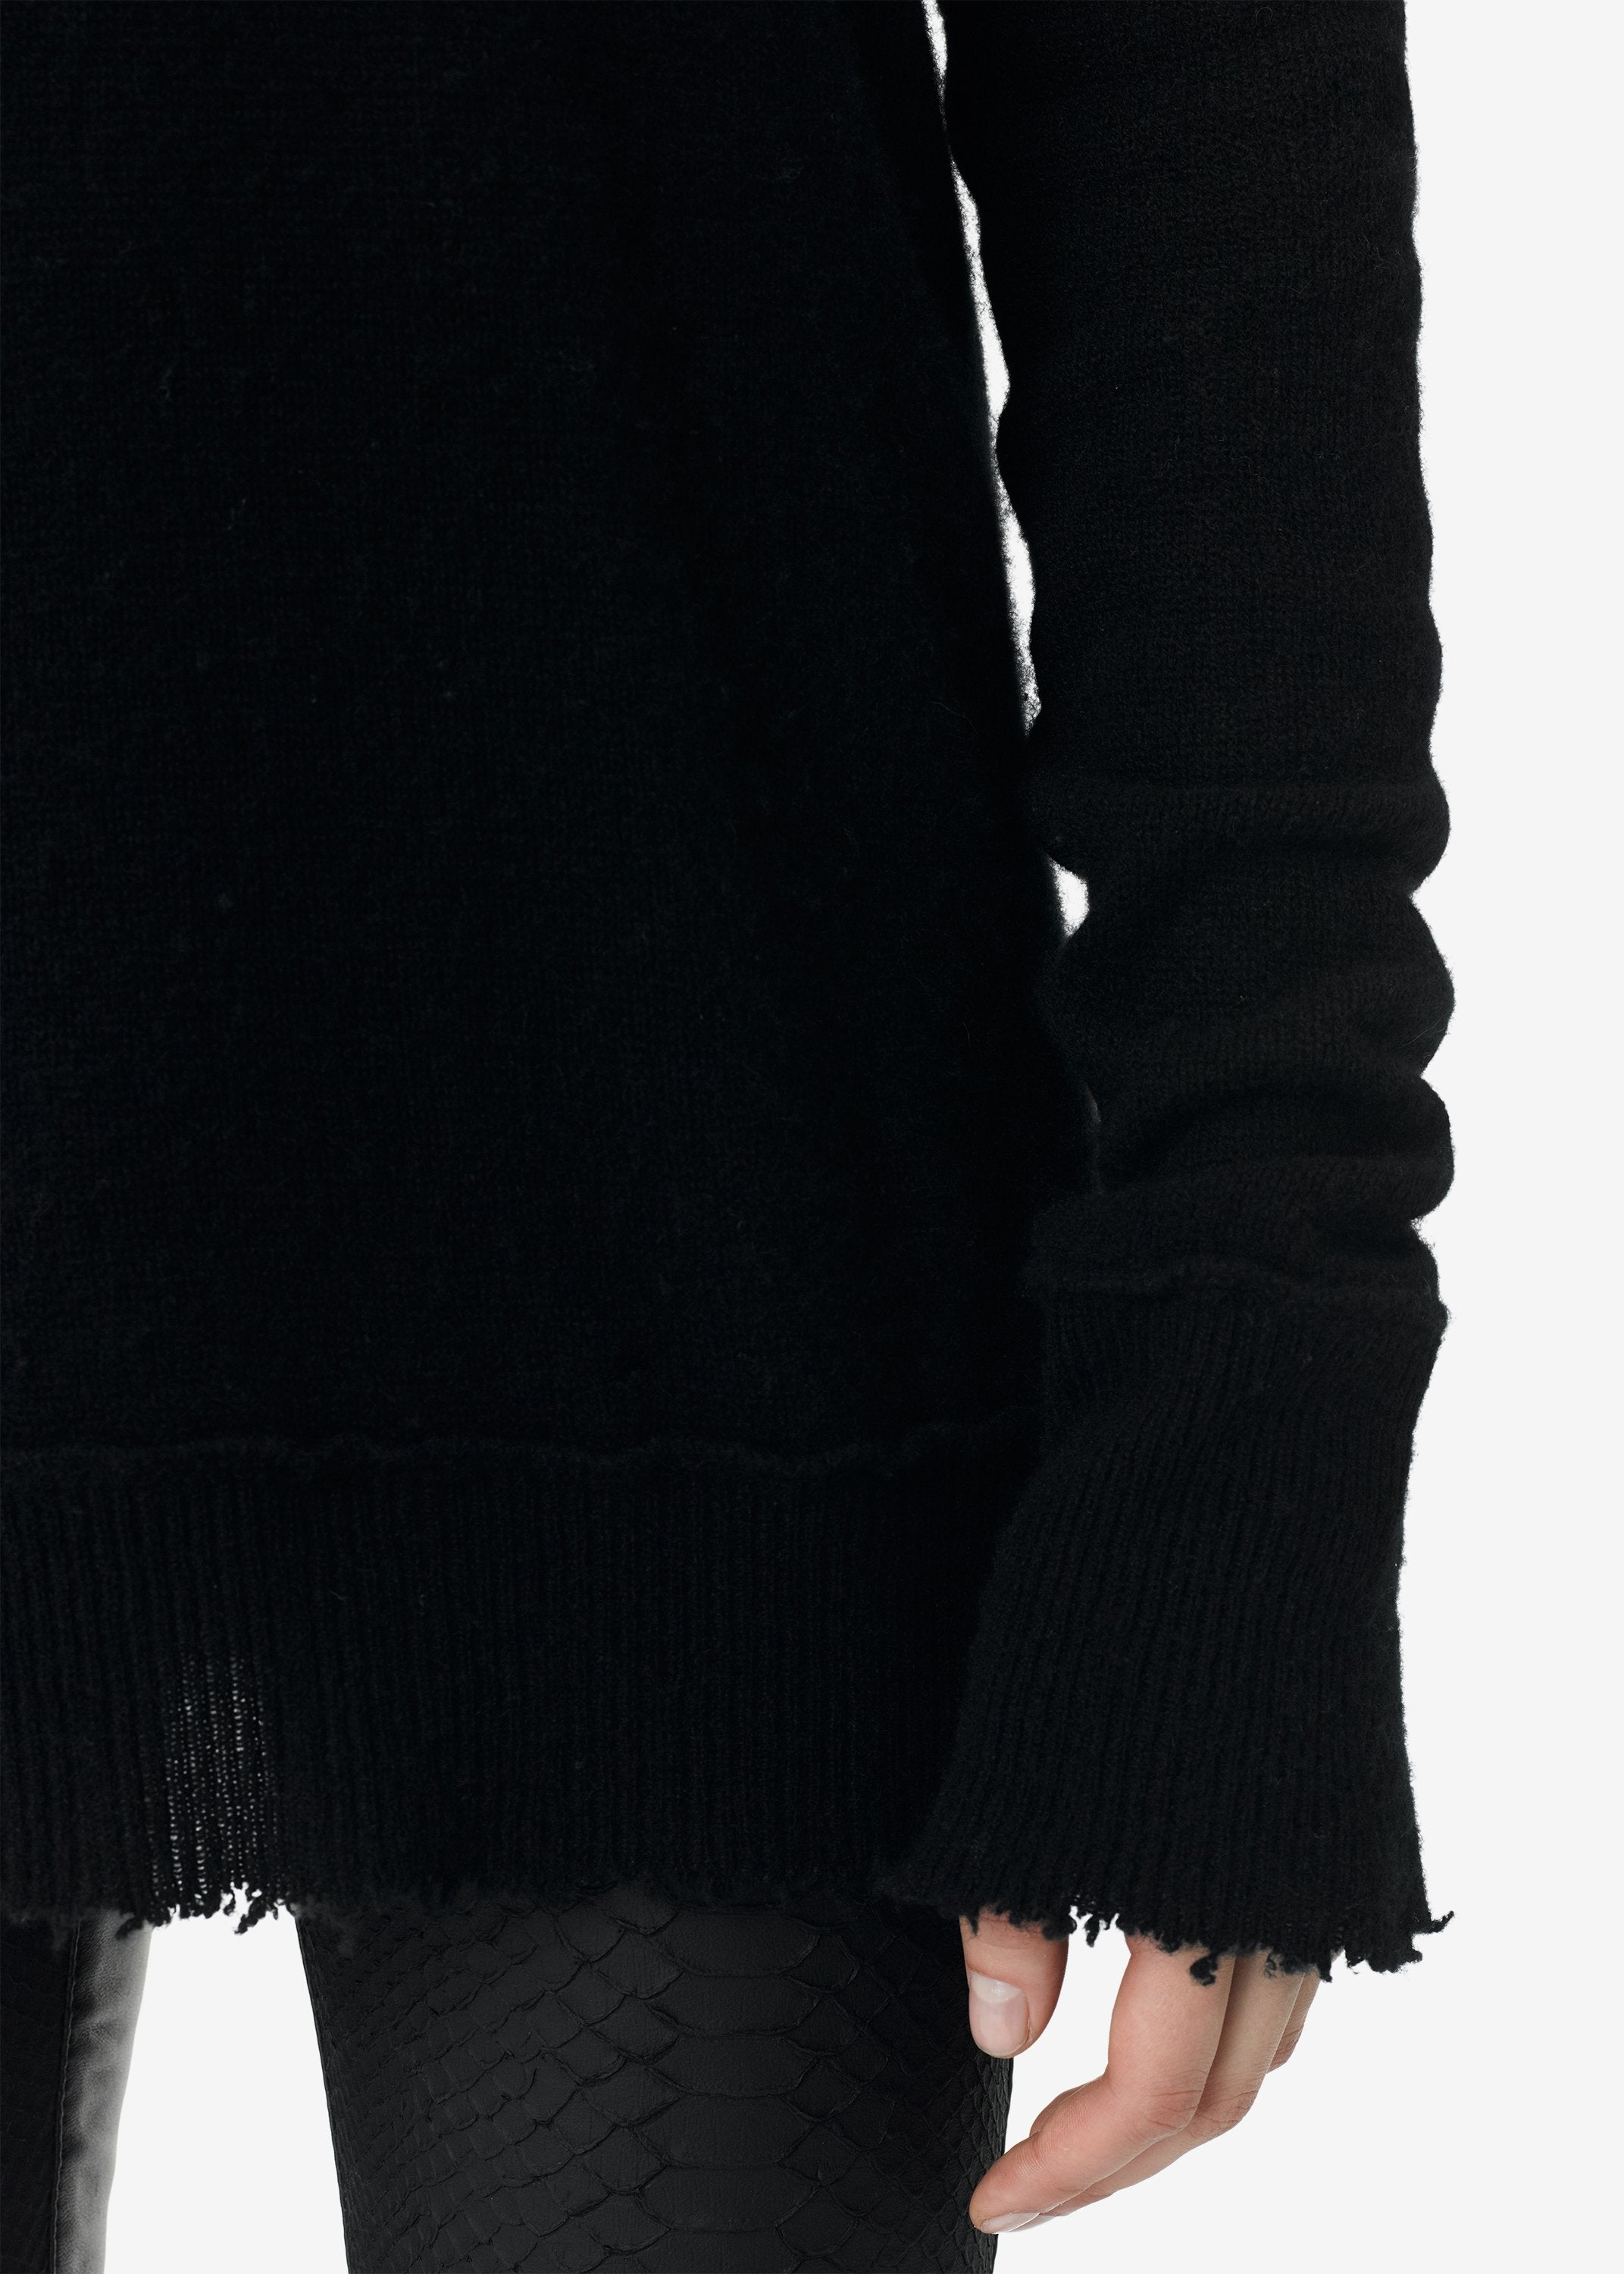 turtleneck-knit-black-image-3